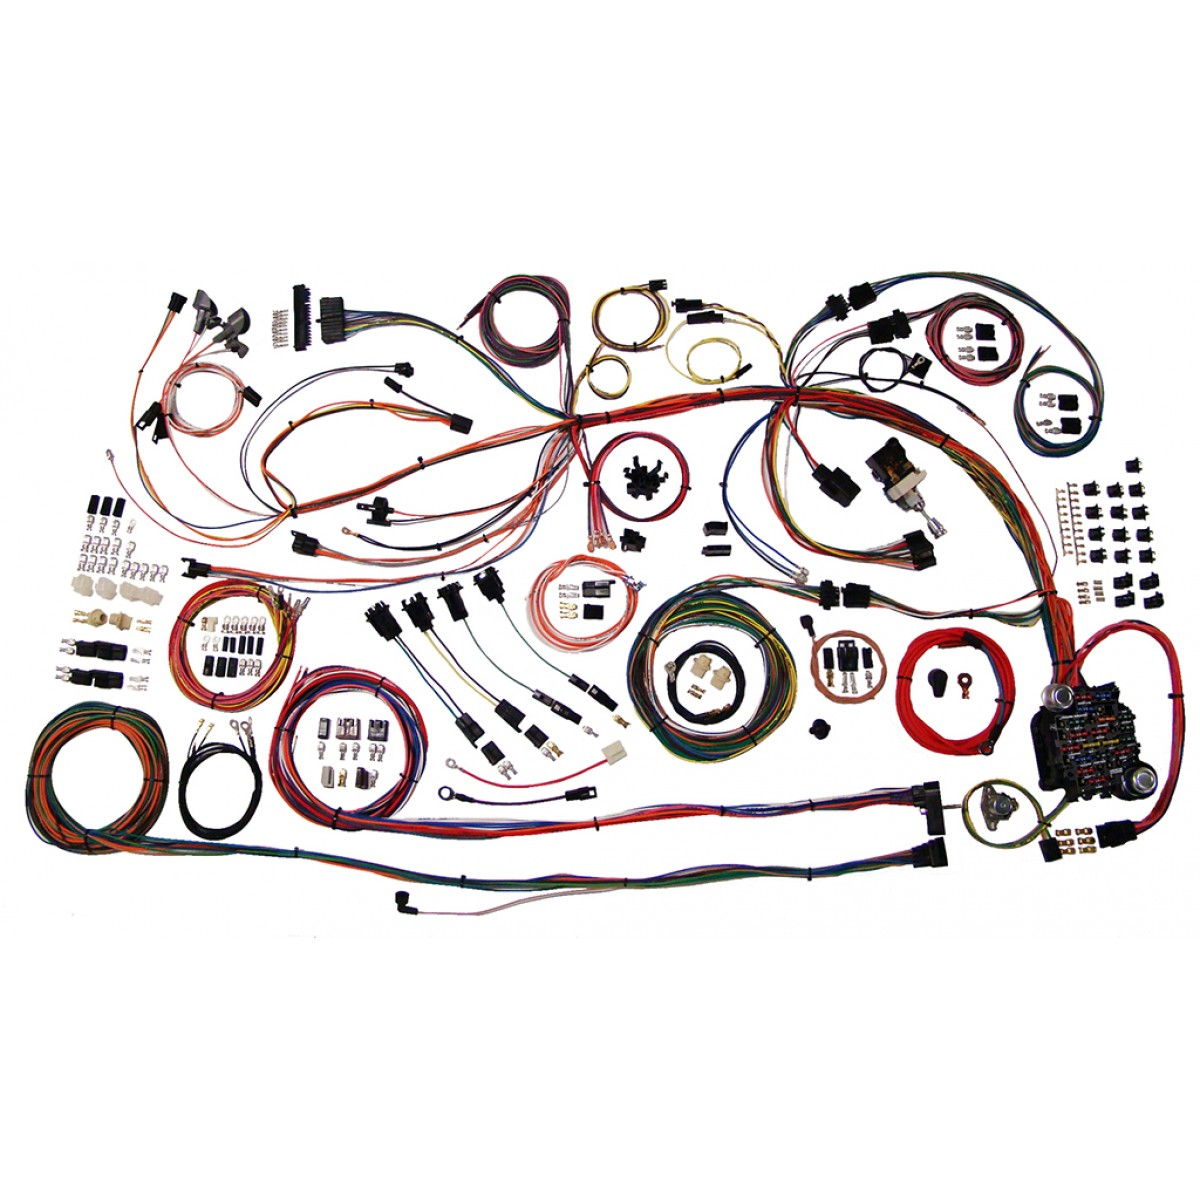 complete wiring harness kit 1968 1969 chevelle part 510158 68 69 chevelle full wire harness 510158_2 1968 1969 el camino wiring harness kit part 510158 1968 1969 engine wiring harness for sale at gsmportal.co